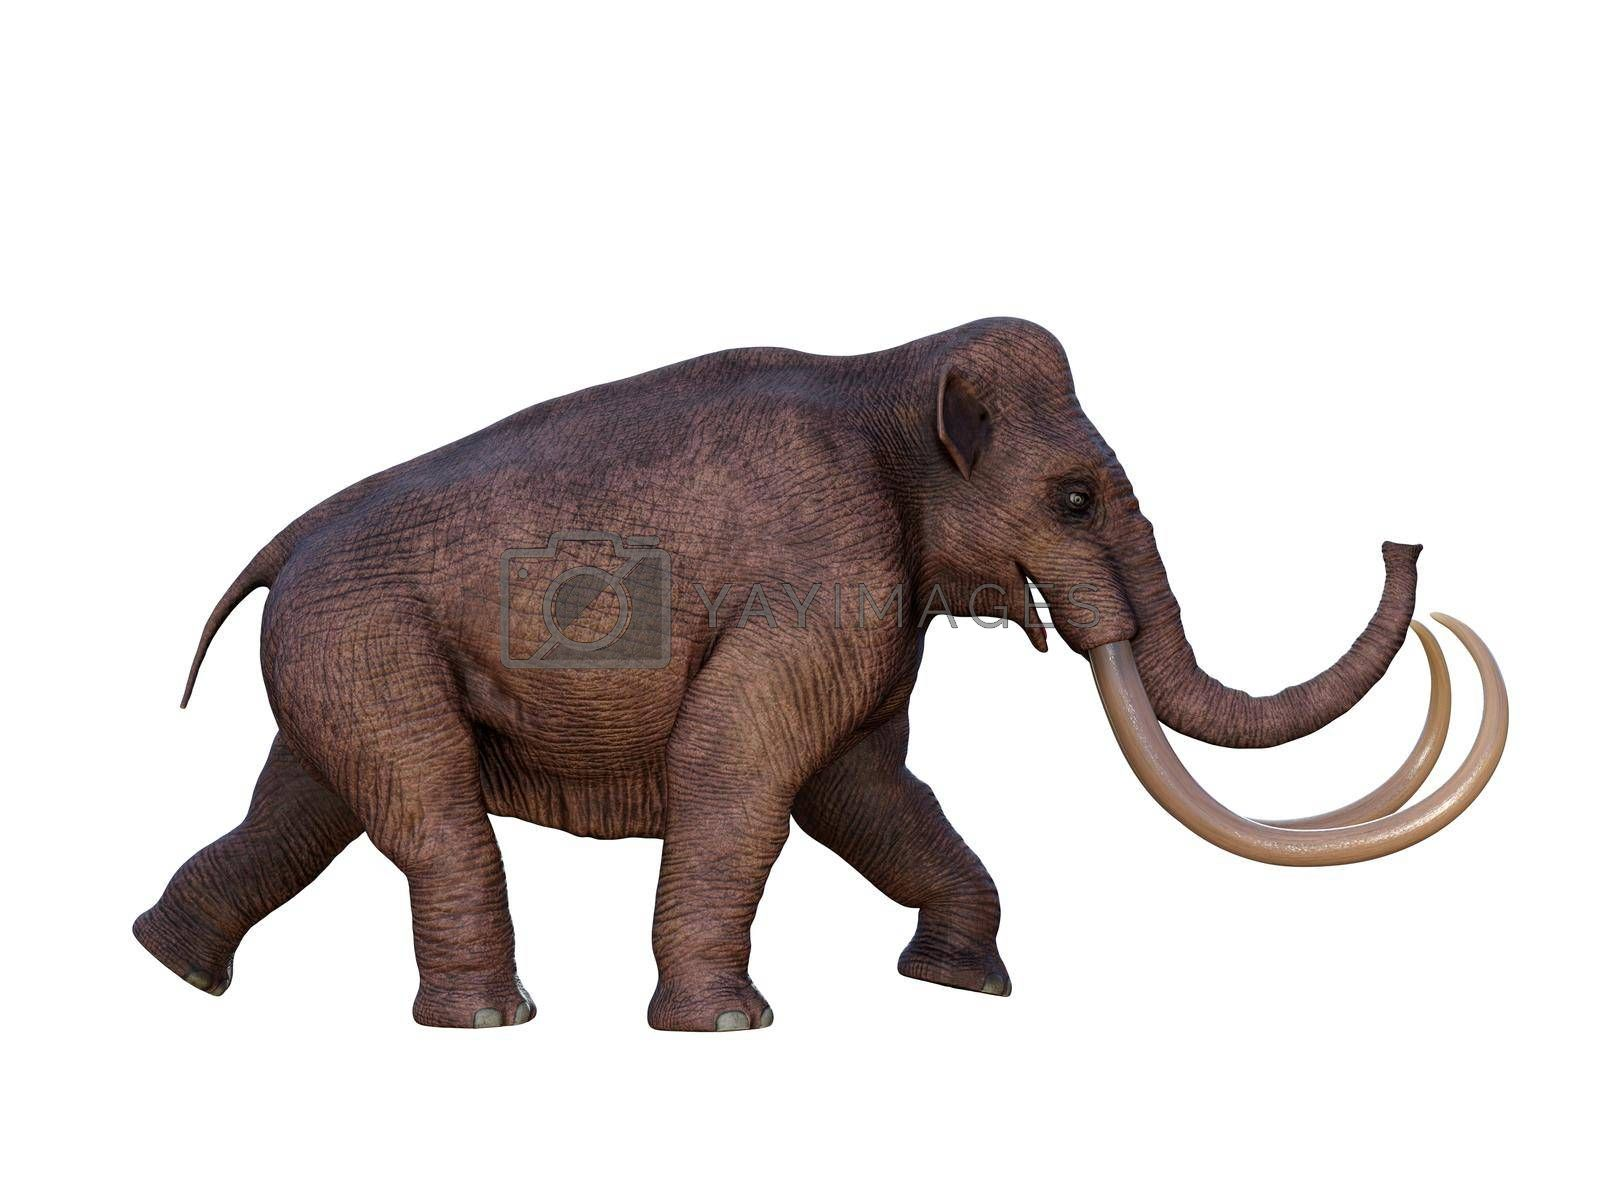 During the Ice Age of North America the Columbian Mammoth was the megafauna of the continent.